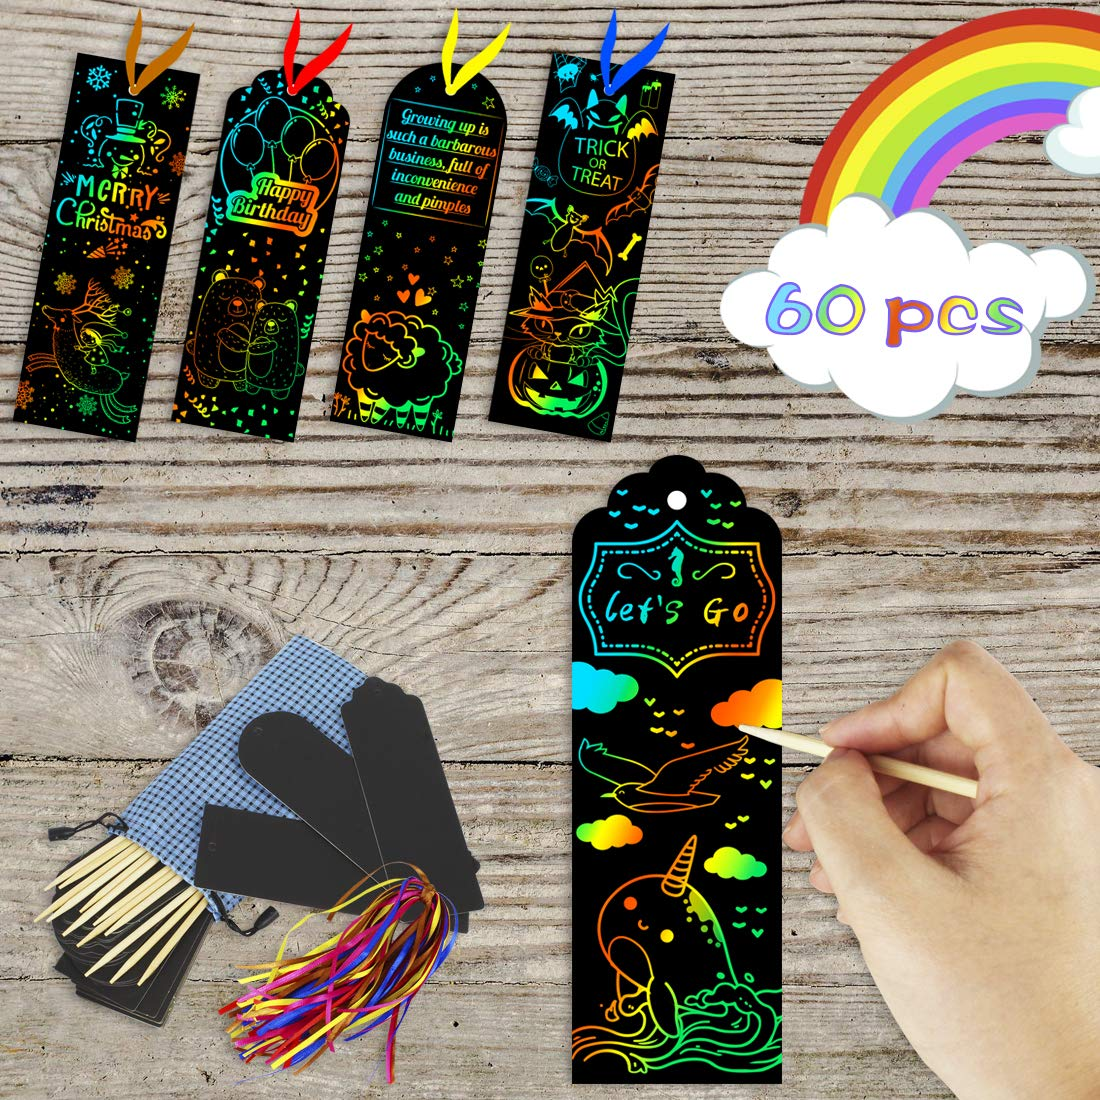 KOMIWOO Scratch Rainbow-Bookmarks, Magic Scratch Paper Art Bookmarks DIY Gift Tags with Satin Ribbons, Wood Stylus, Rope, Storage Bag for Kids Party and Arts & Craft Activity